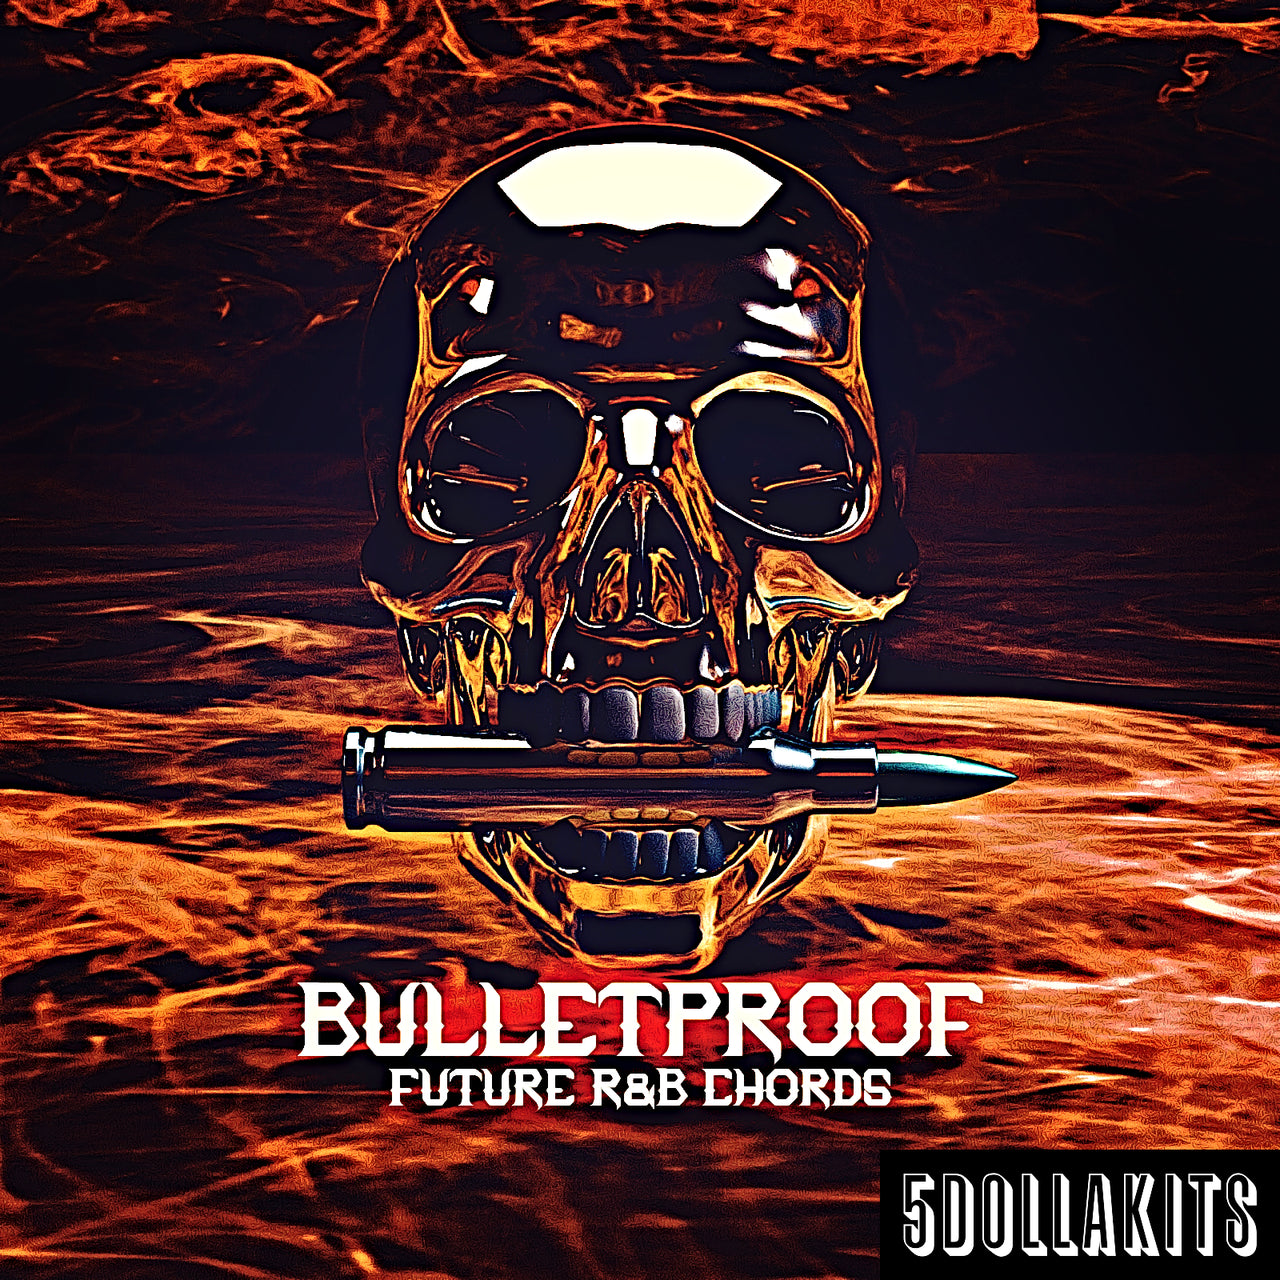 Bulletproof: Future R&B Chords